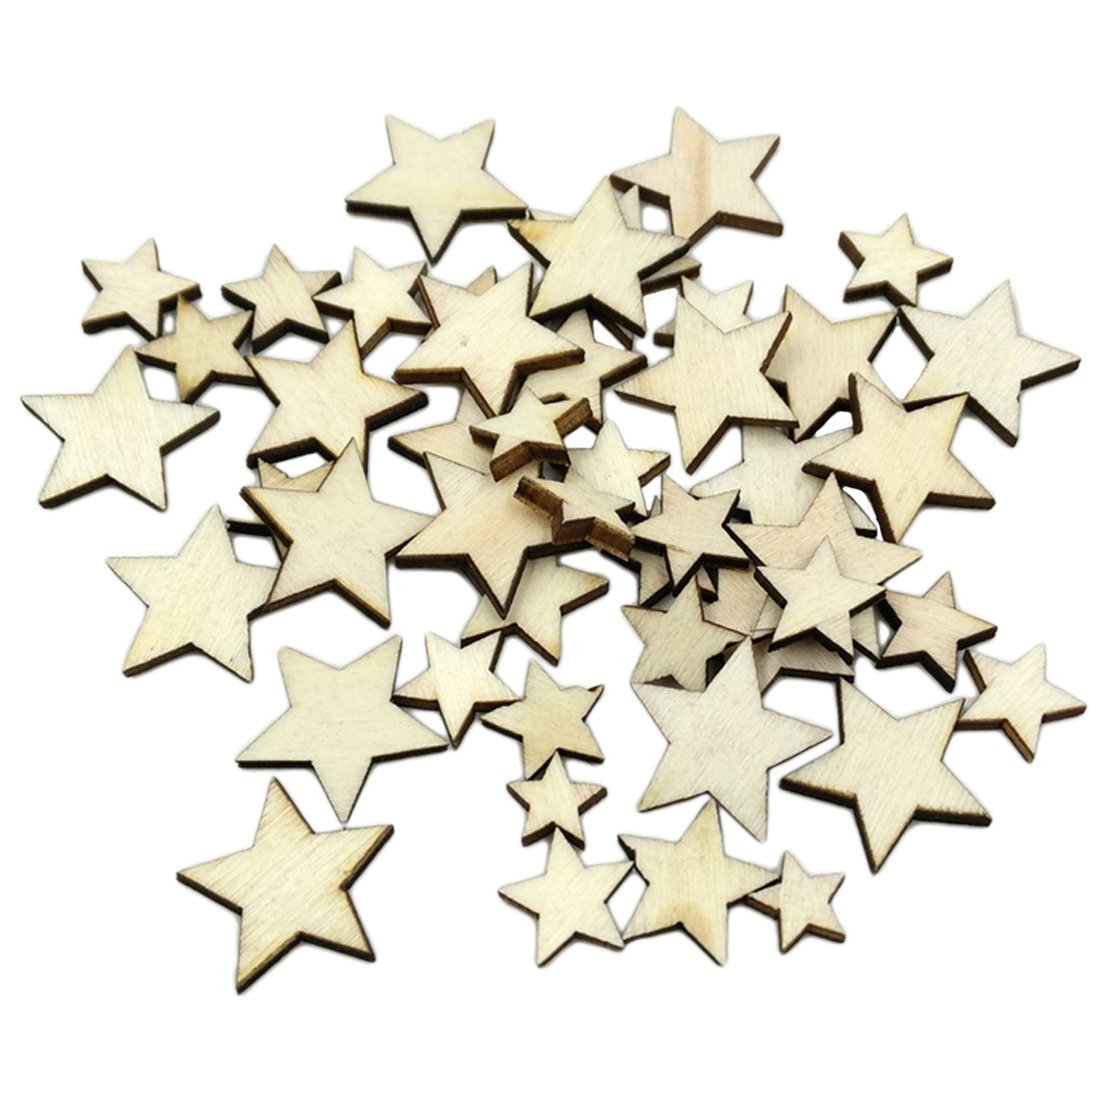 50Pcs Romantic Style Wood Star Chipboard Wooden Home Decorations DIY Christmas Party Scrapbooking Luwu-Store